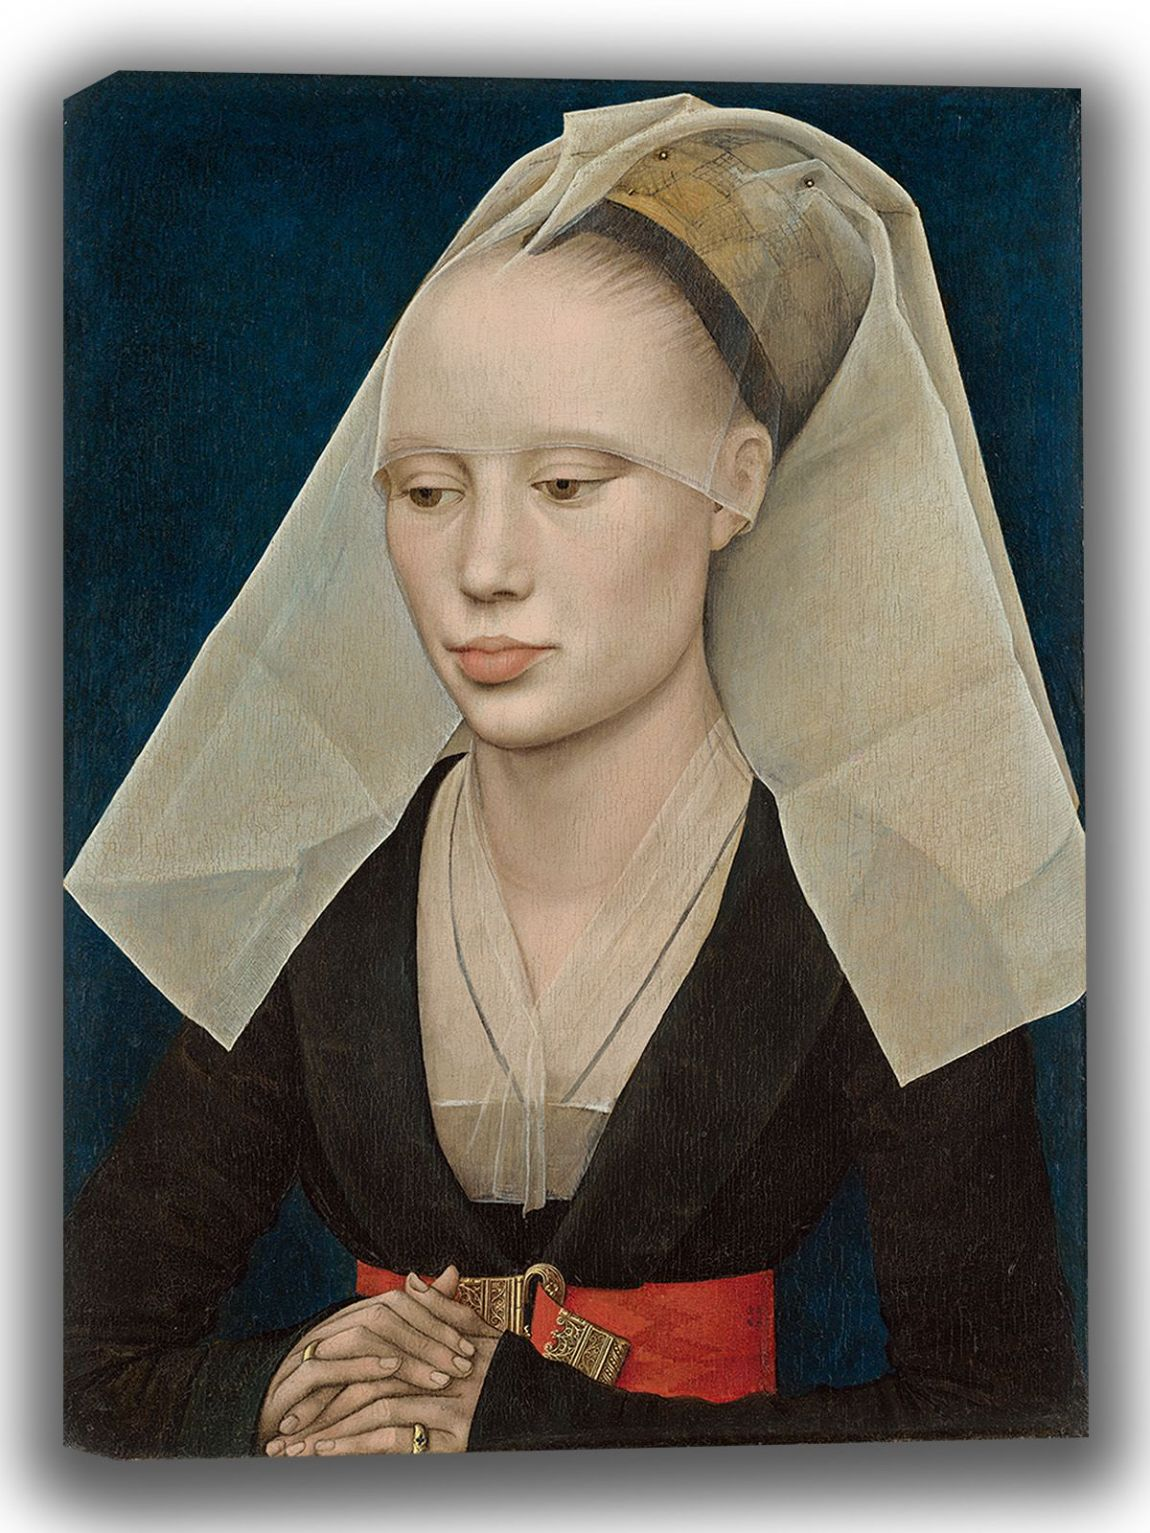 Weyden, Rogier van der: Portrait of a Lady. Fine Art Canvas. Sizes: A4/A3/A2/A1 (003946)